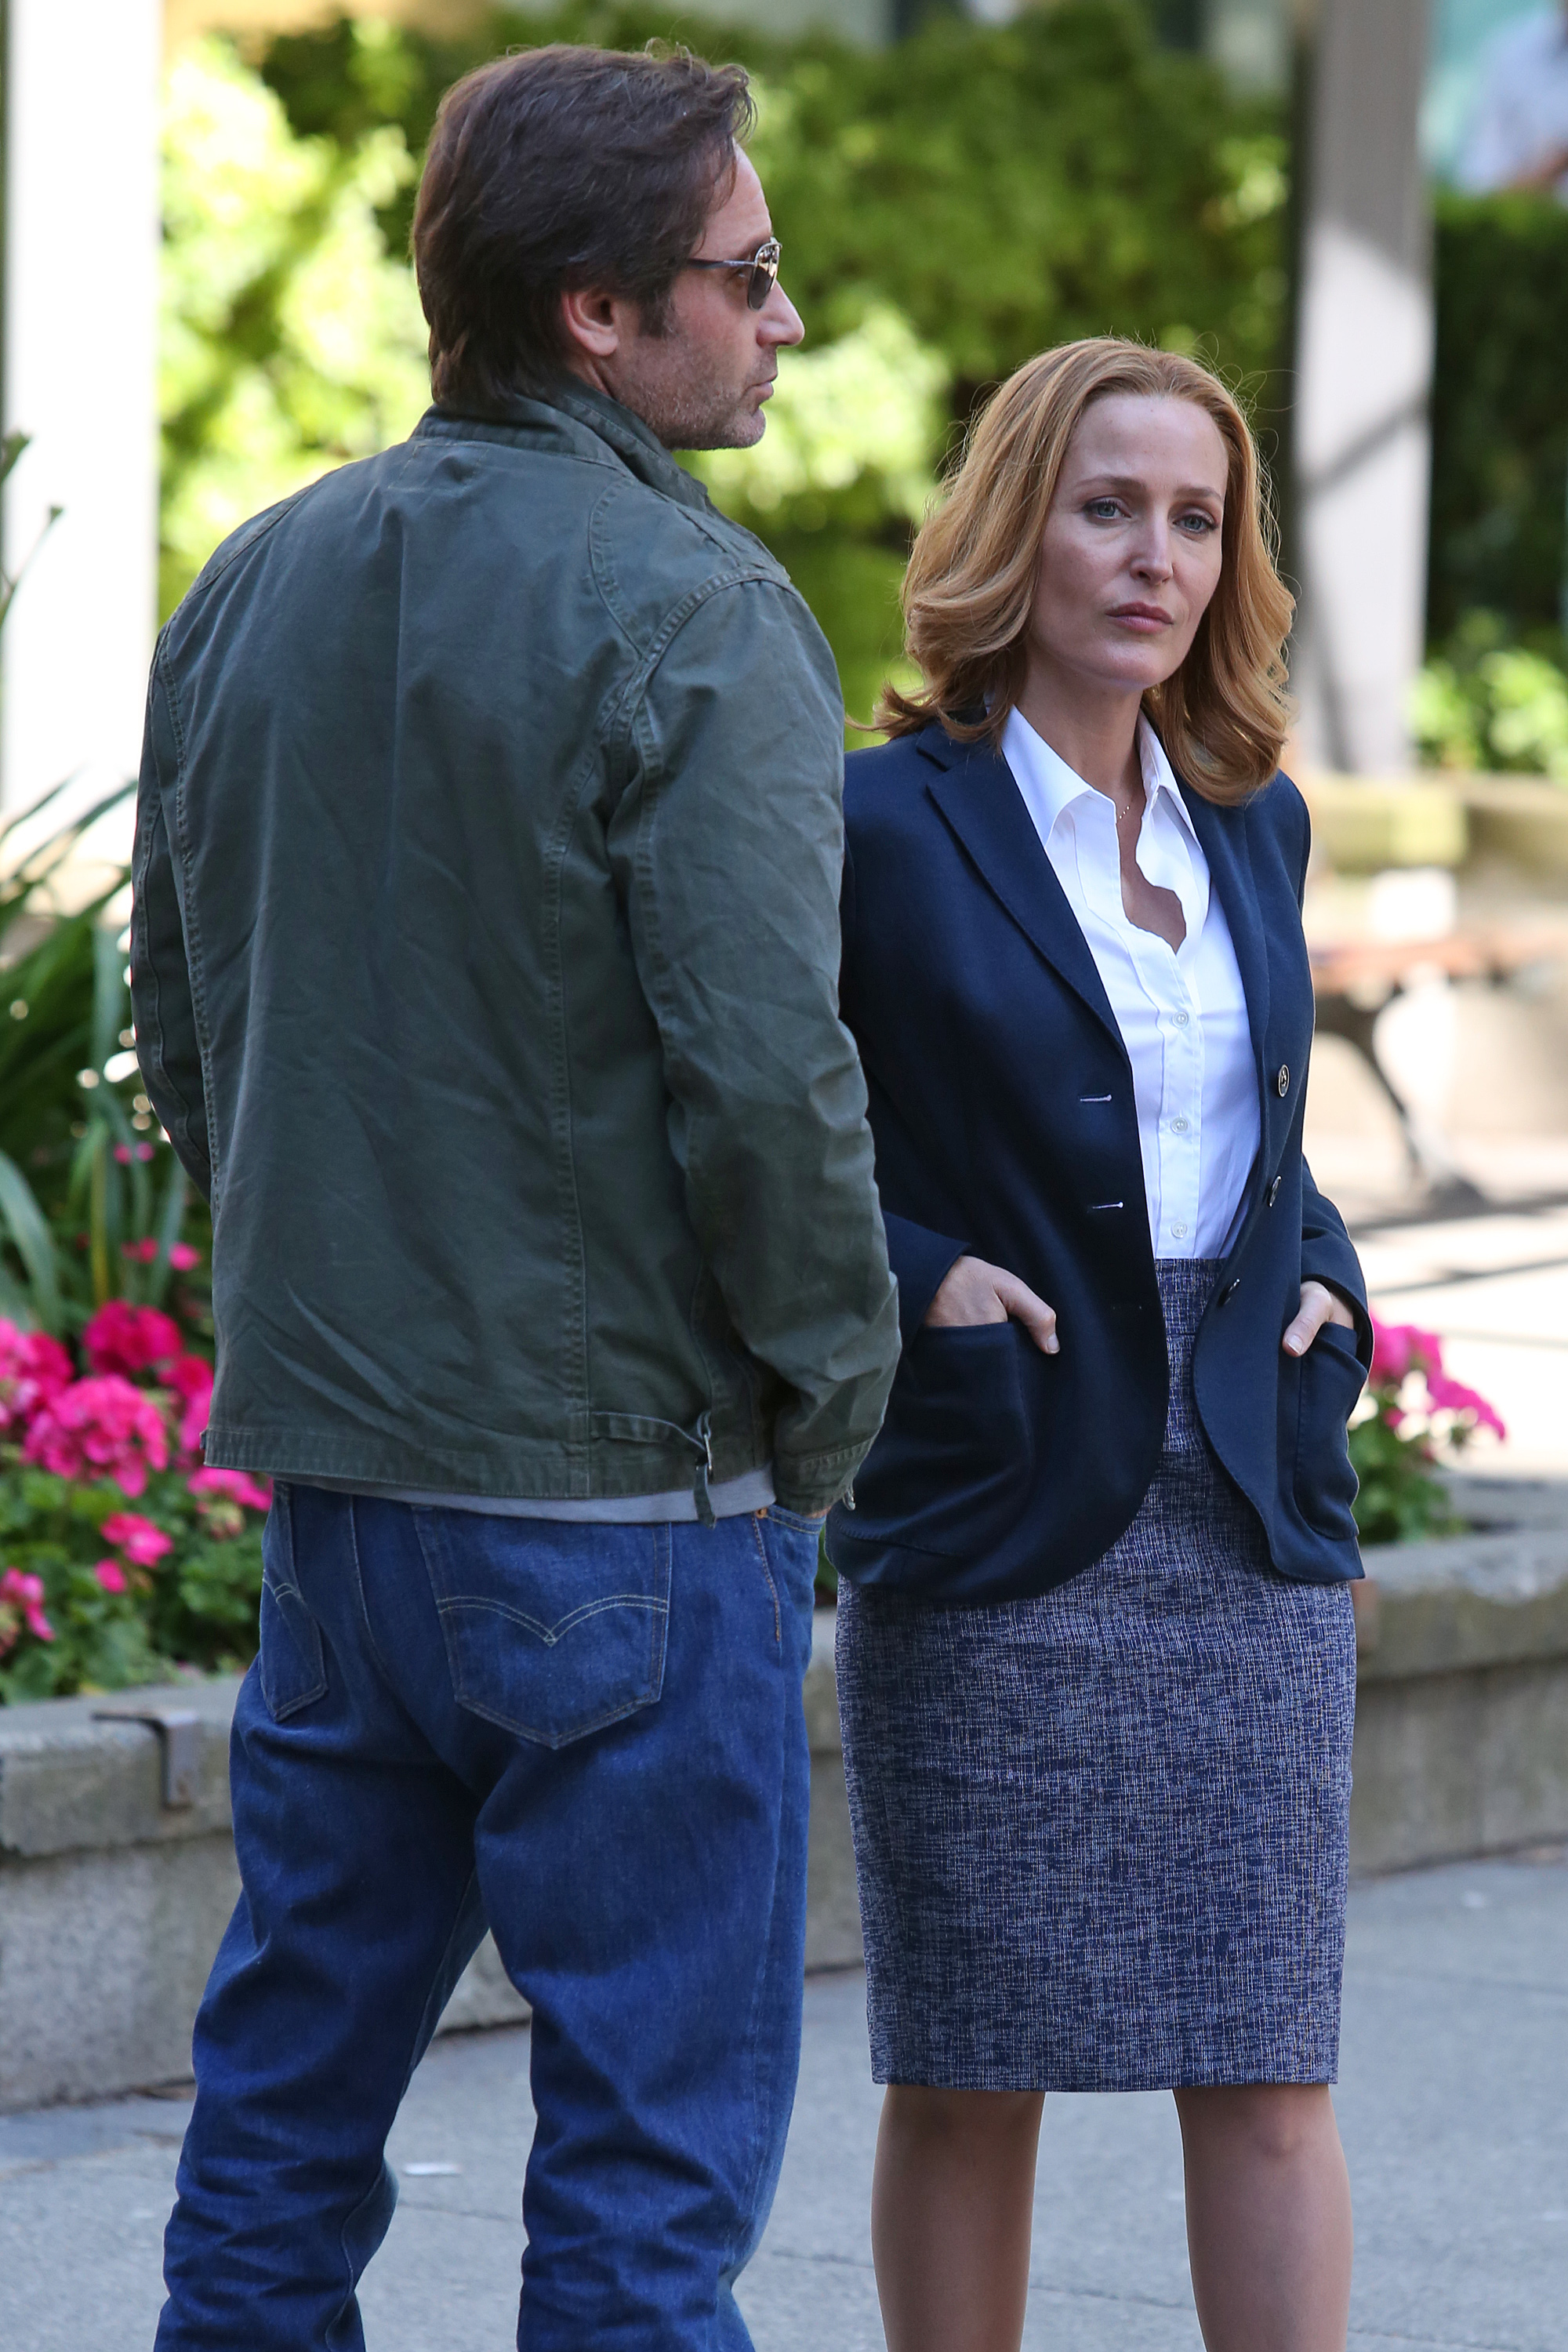 David Duchovny and Gillian Anderson